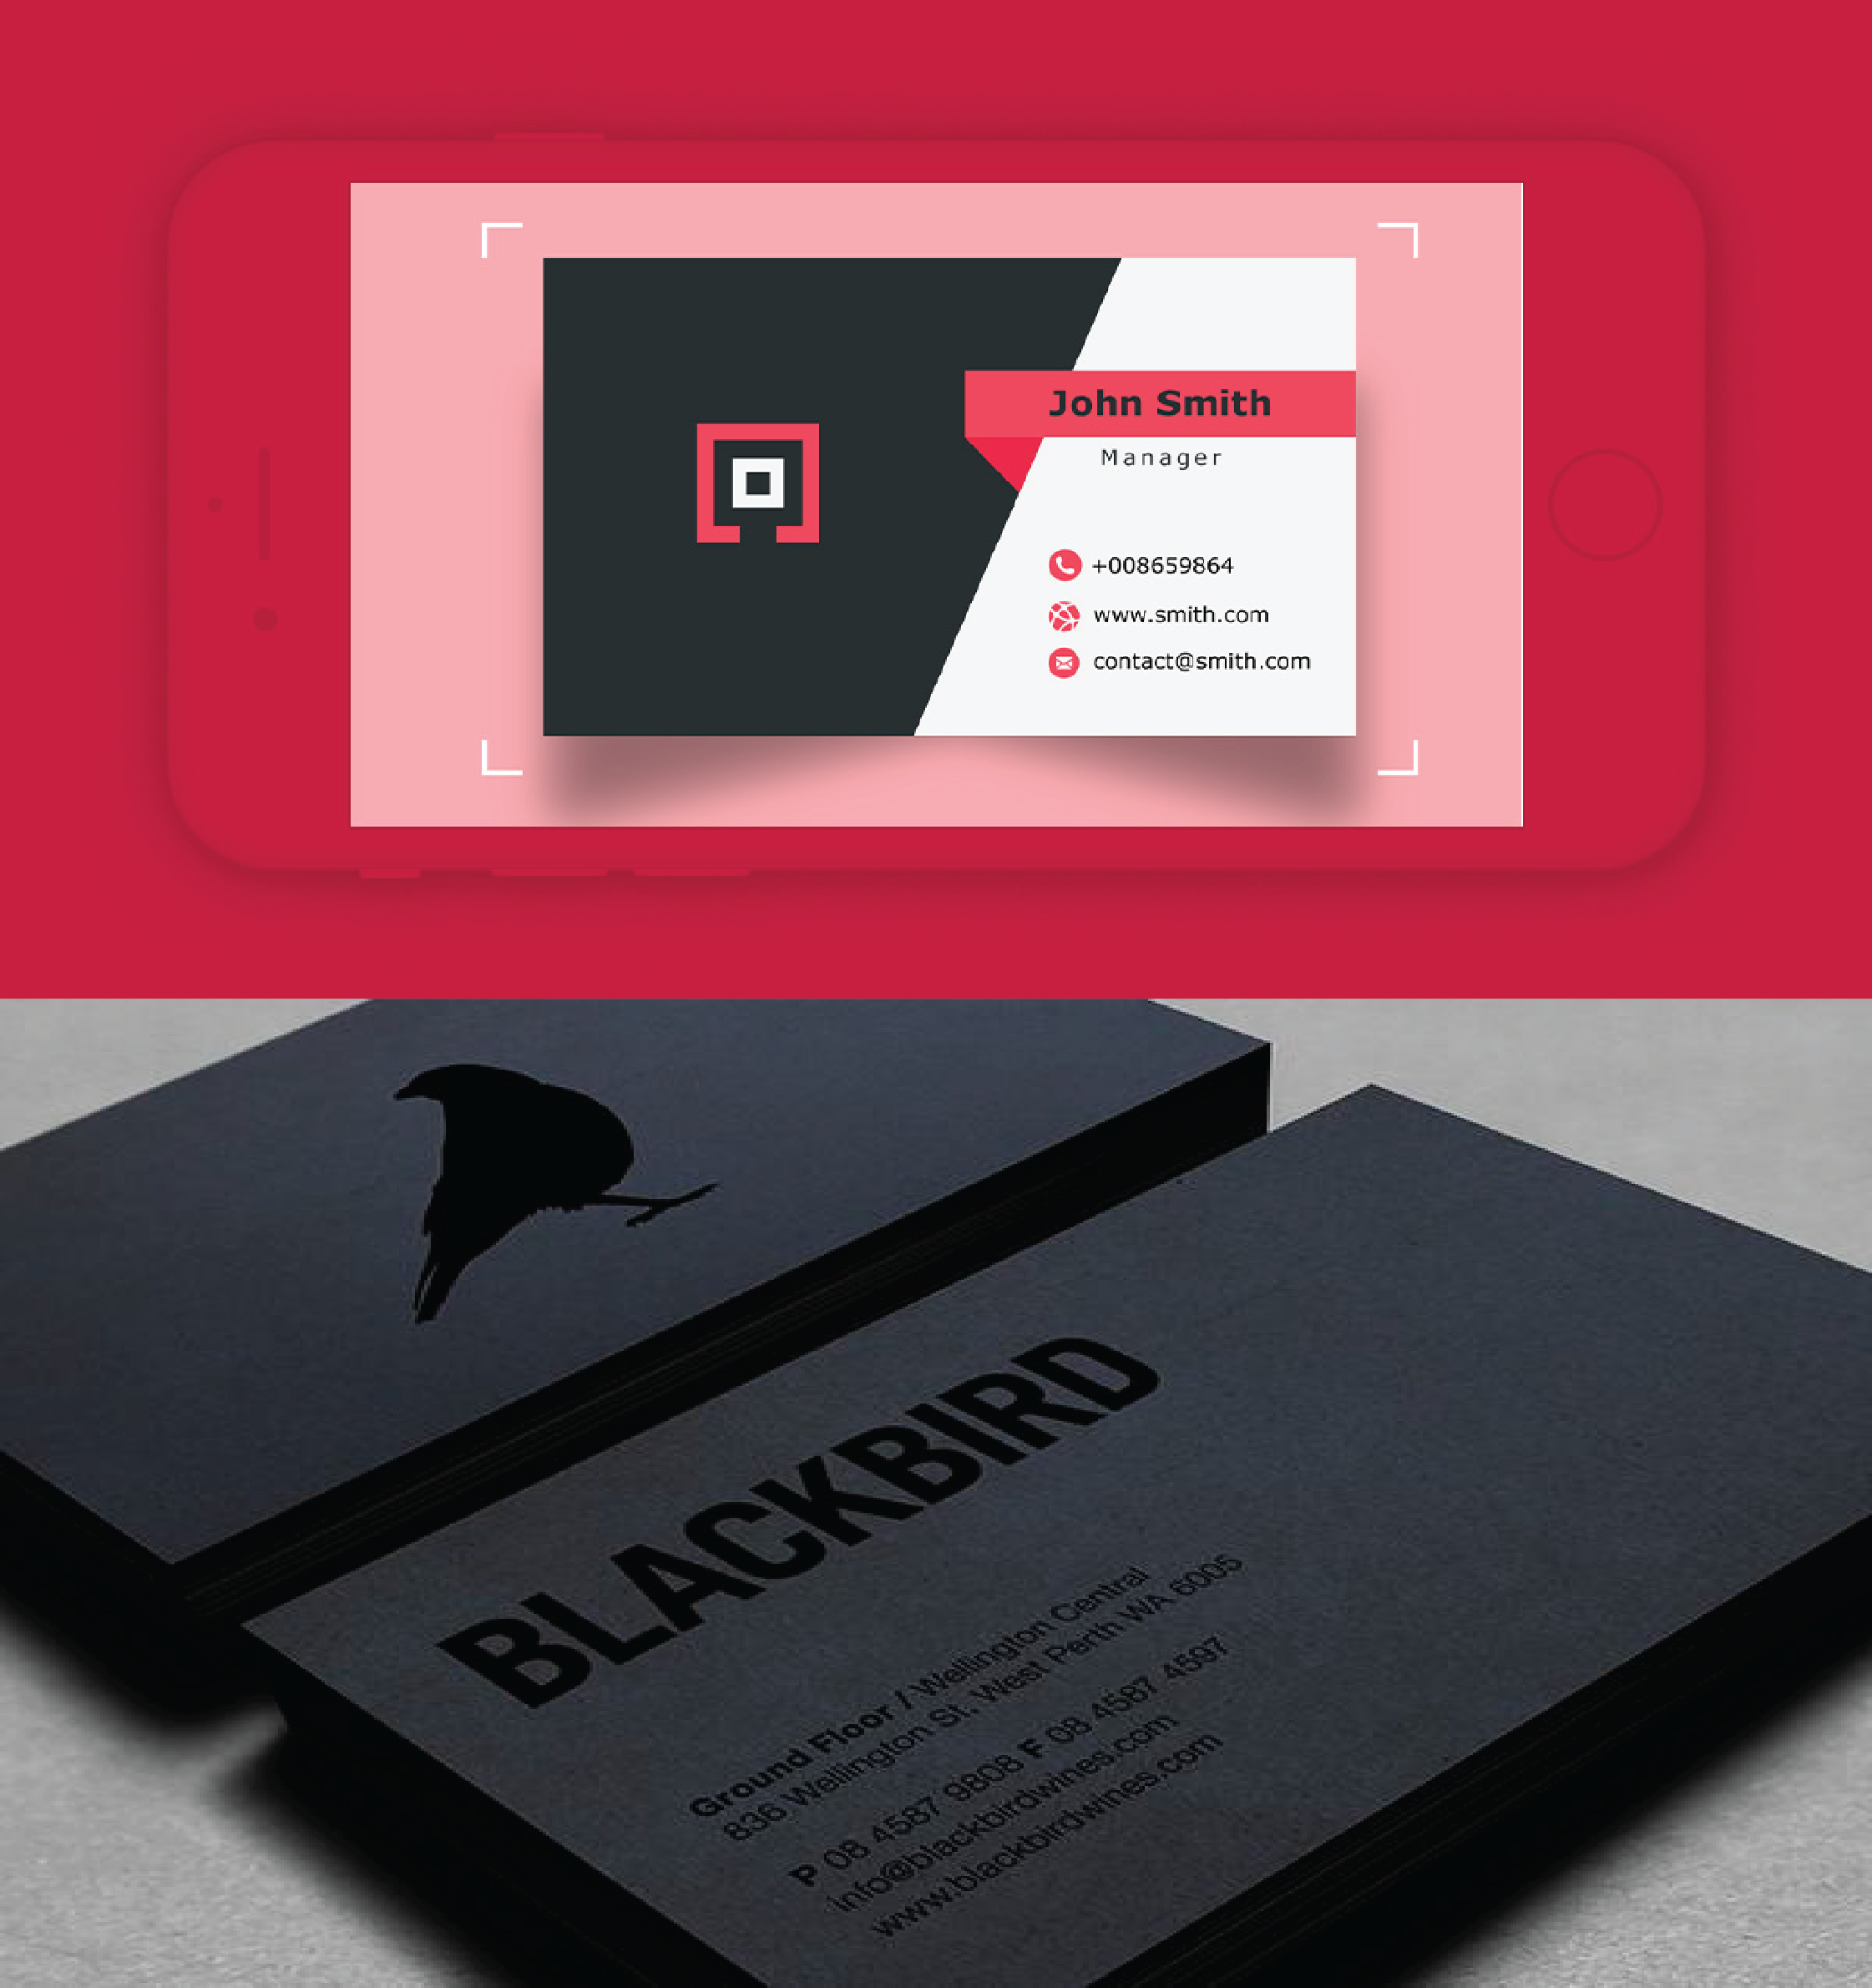 Design a create two outstanding professional and elegant business sided business card editable psdvector file printready pdf jpeg files up to hq400 dpi files magicingreecefo Image collections